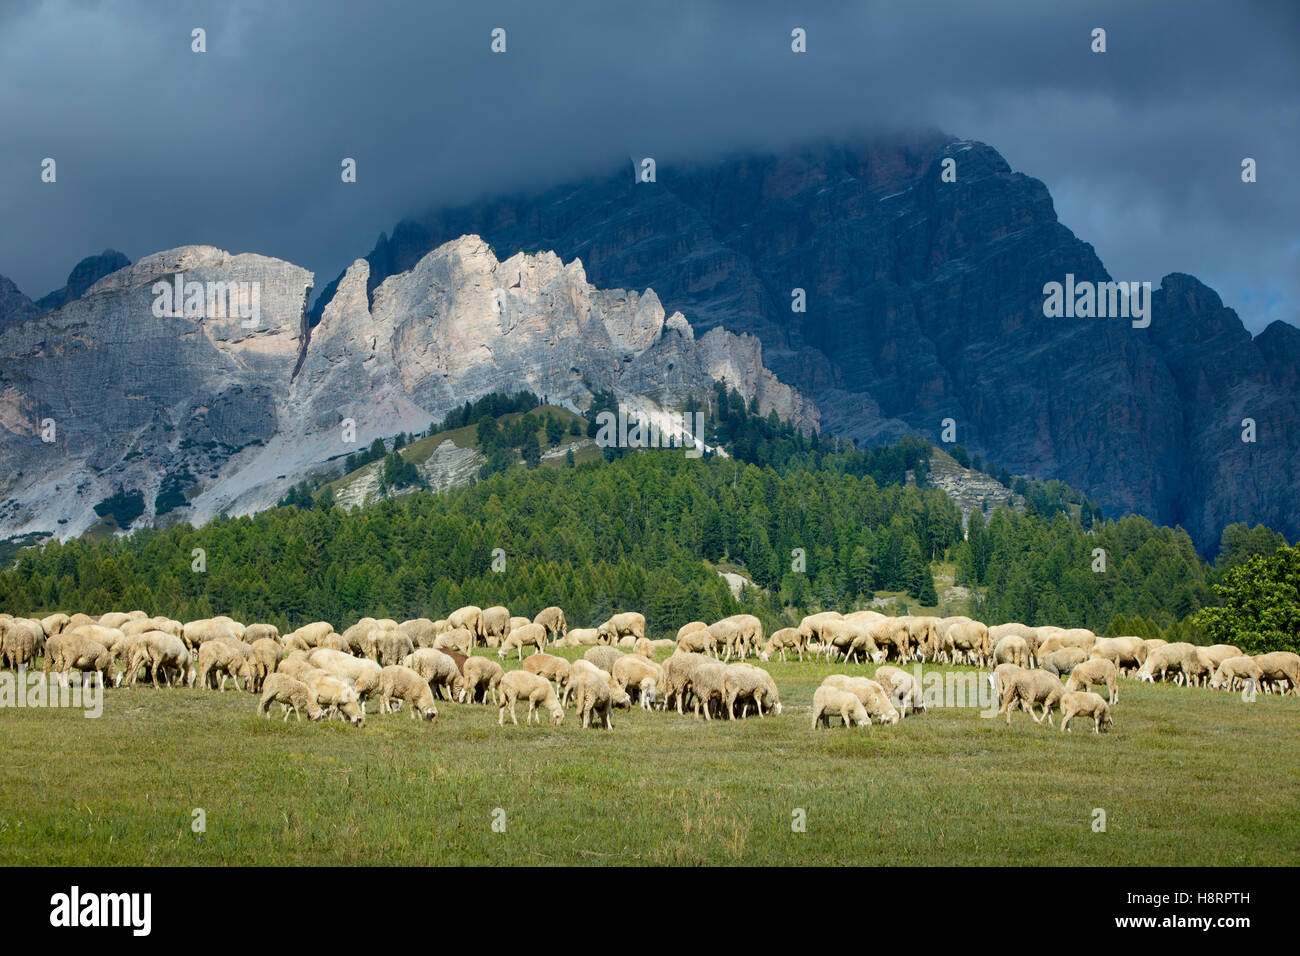 Sheep grazing on a hillside below peaks of the Dolomite Mountains near Cortina d'Ampezzo, Veneto, Italy - Stock Image